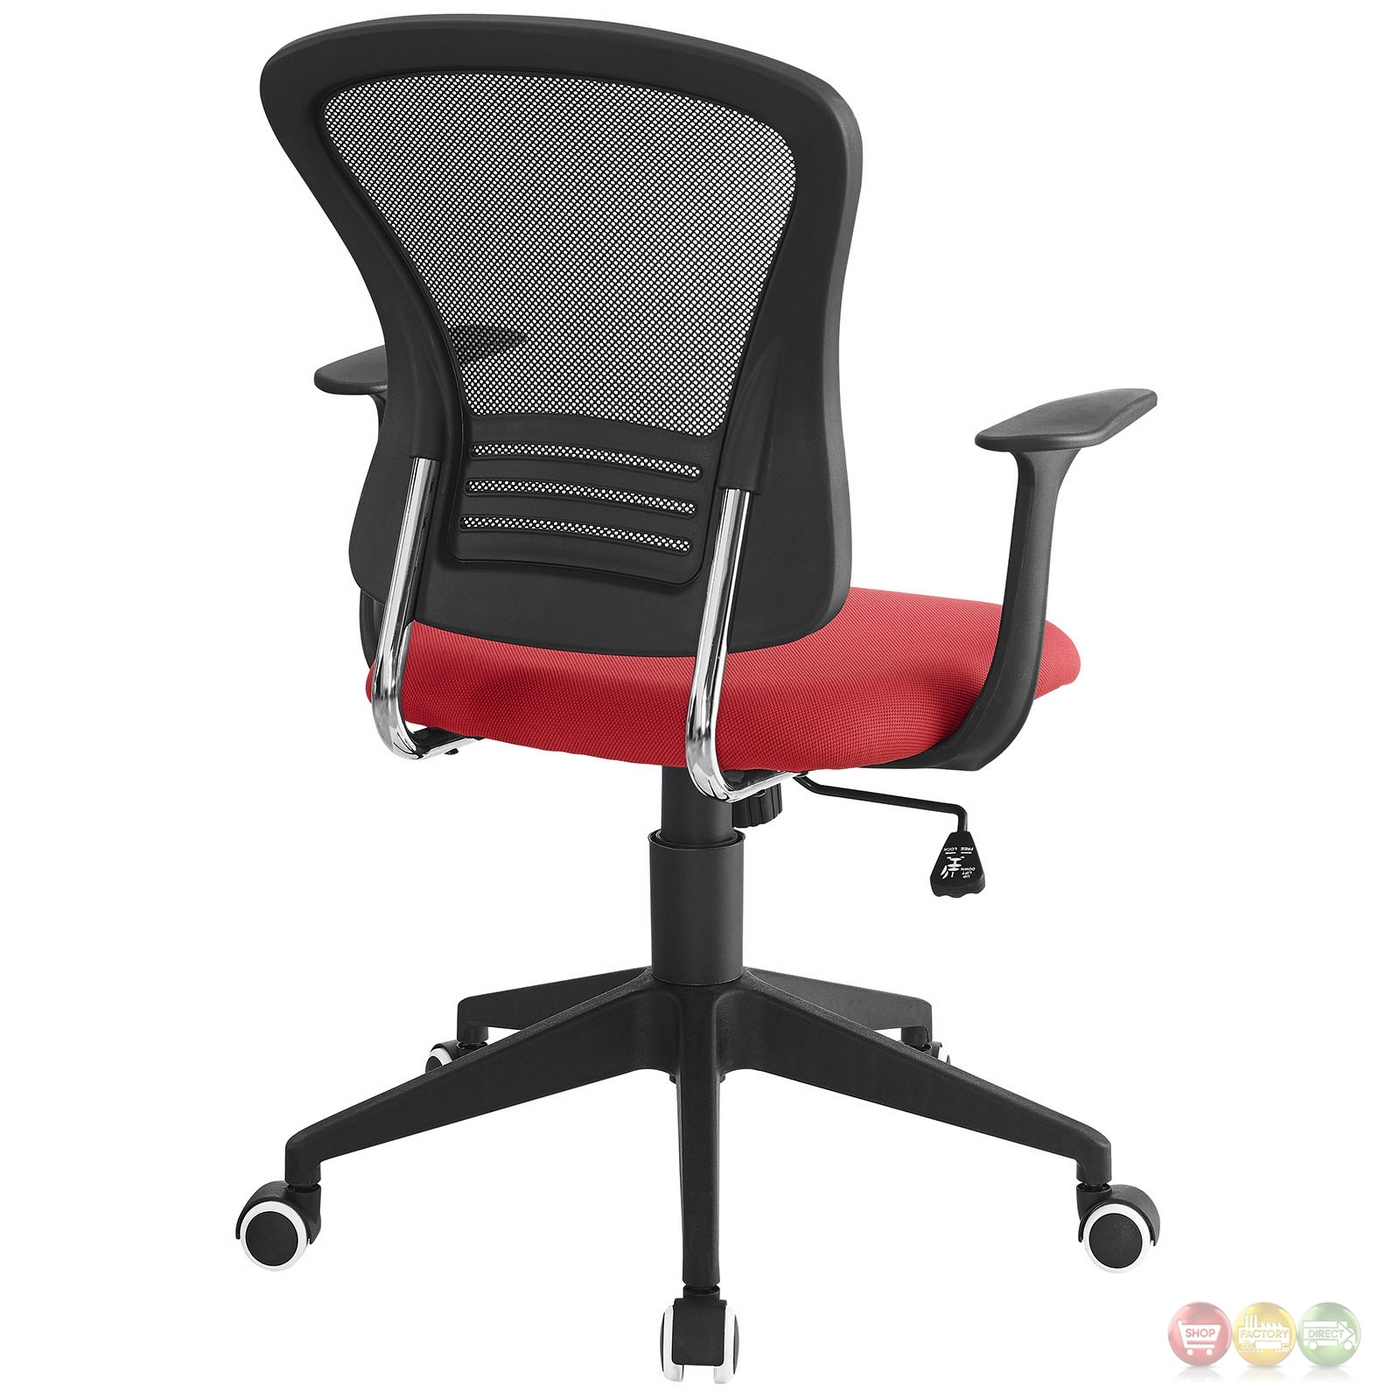 poise modern ergonomic mesh back office chair with lumbar support red. Black Bedroom Furniture Sets. Home Design Ideas